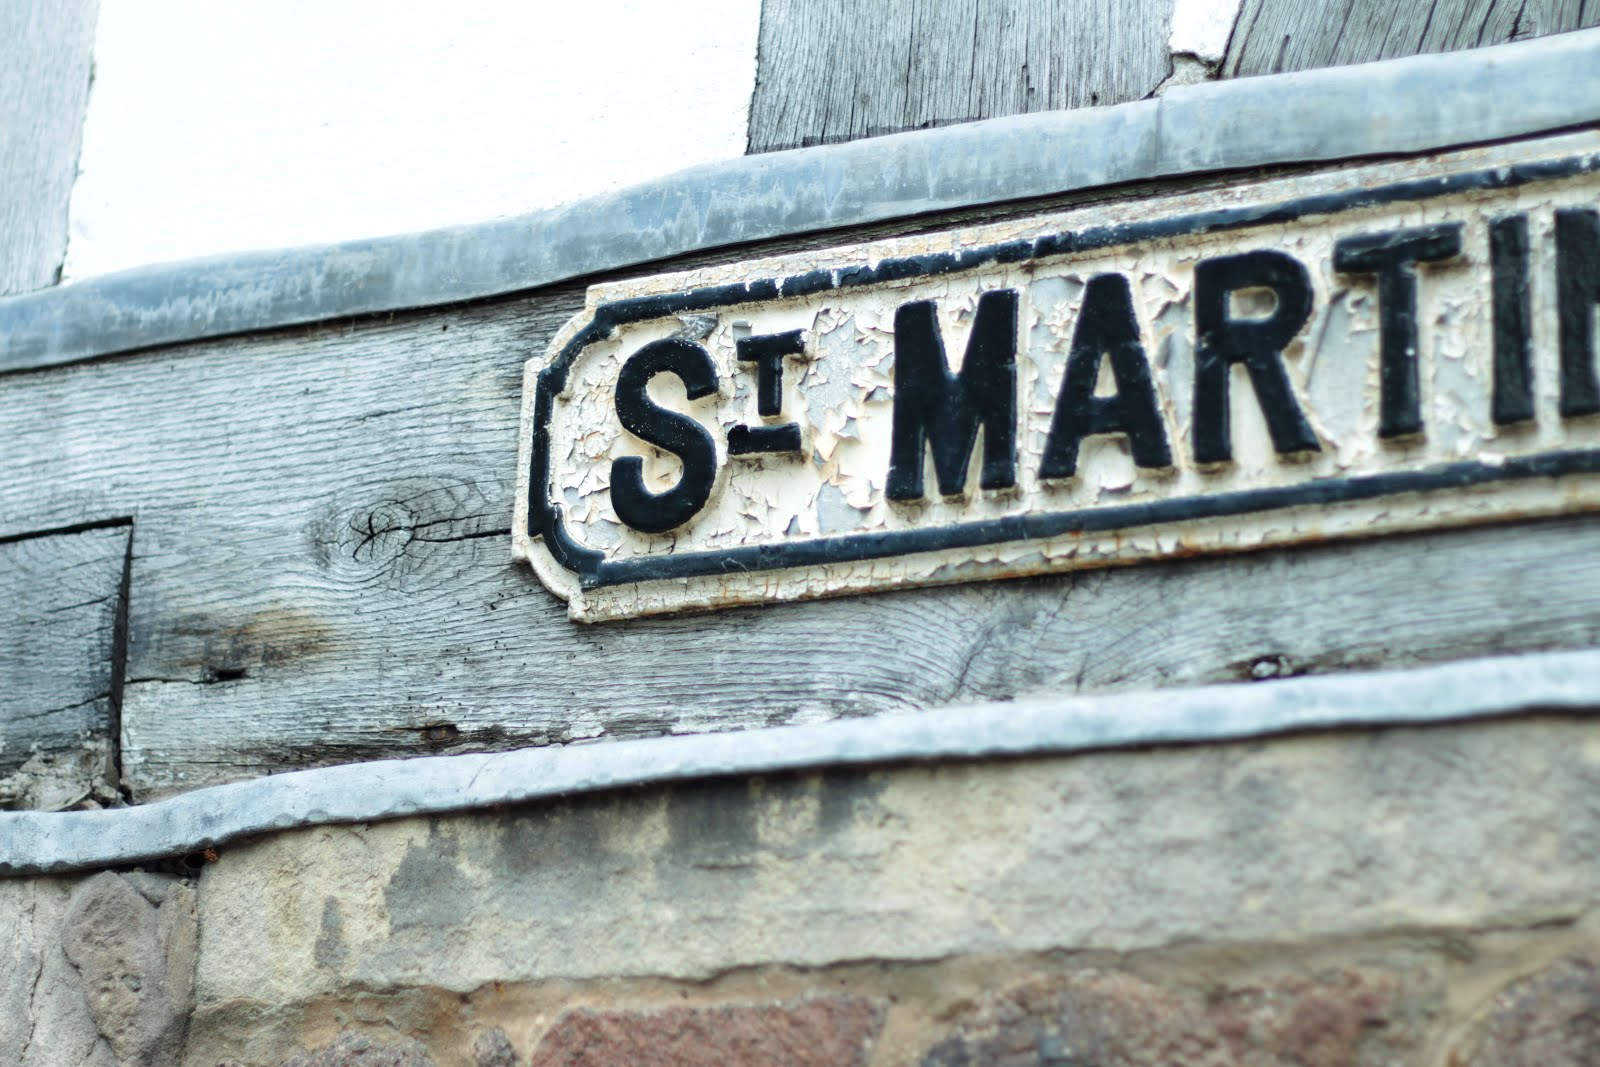 st martin's street leicester